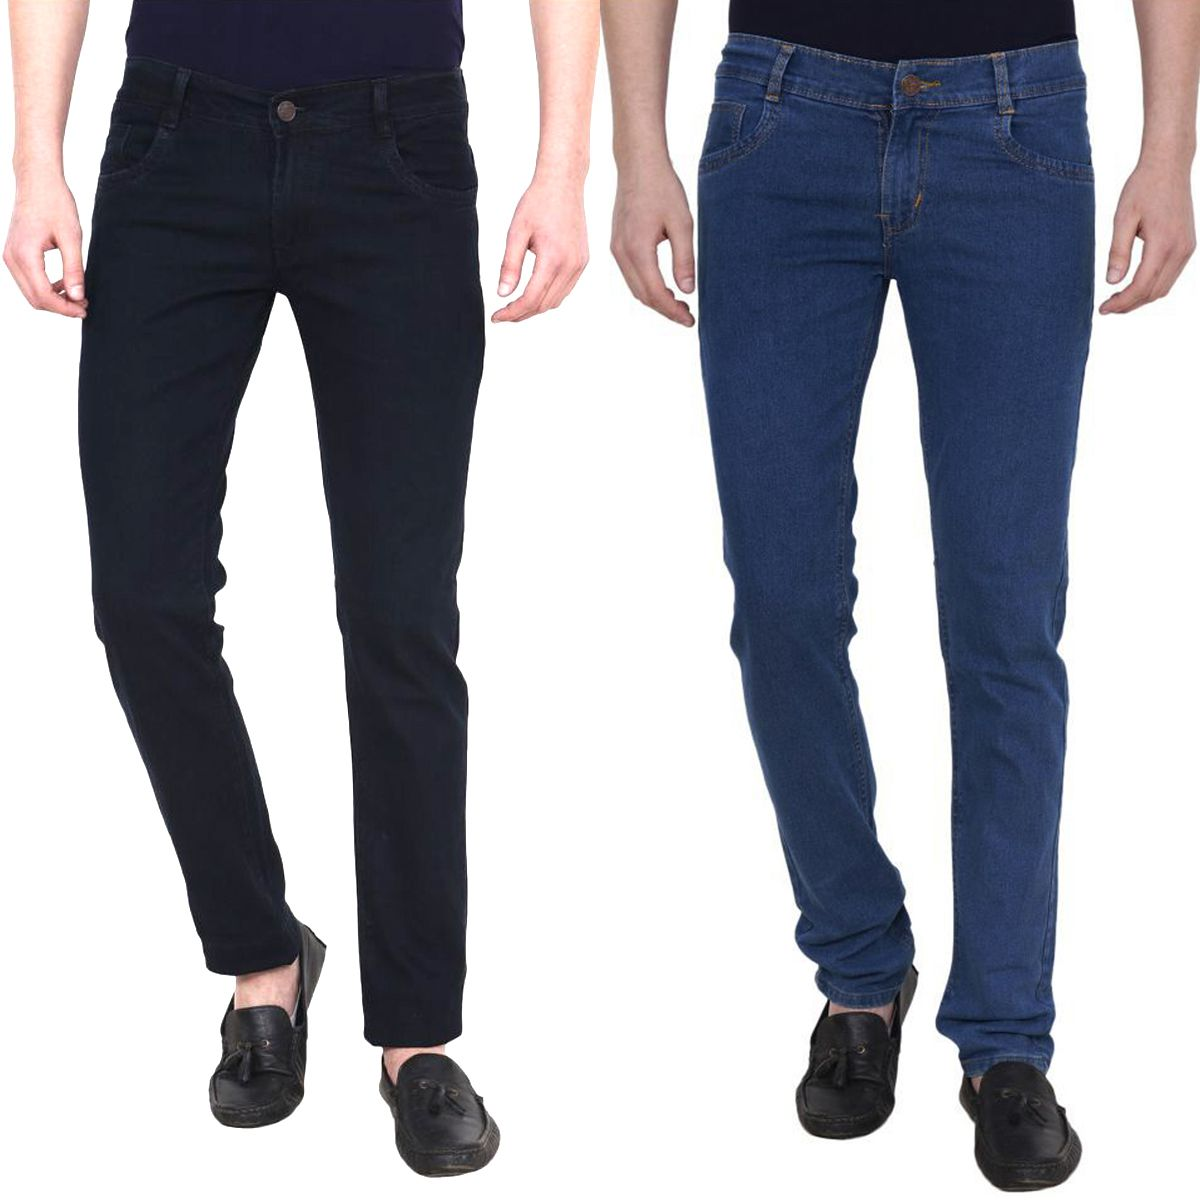 Masterly weft Multicolored Slim Jeans